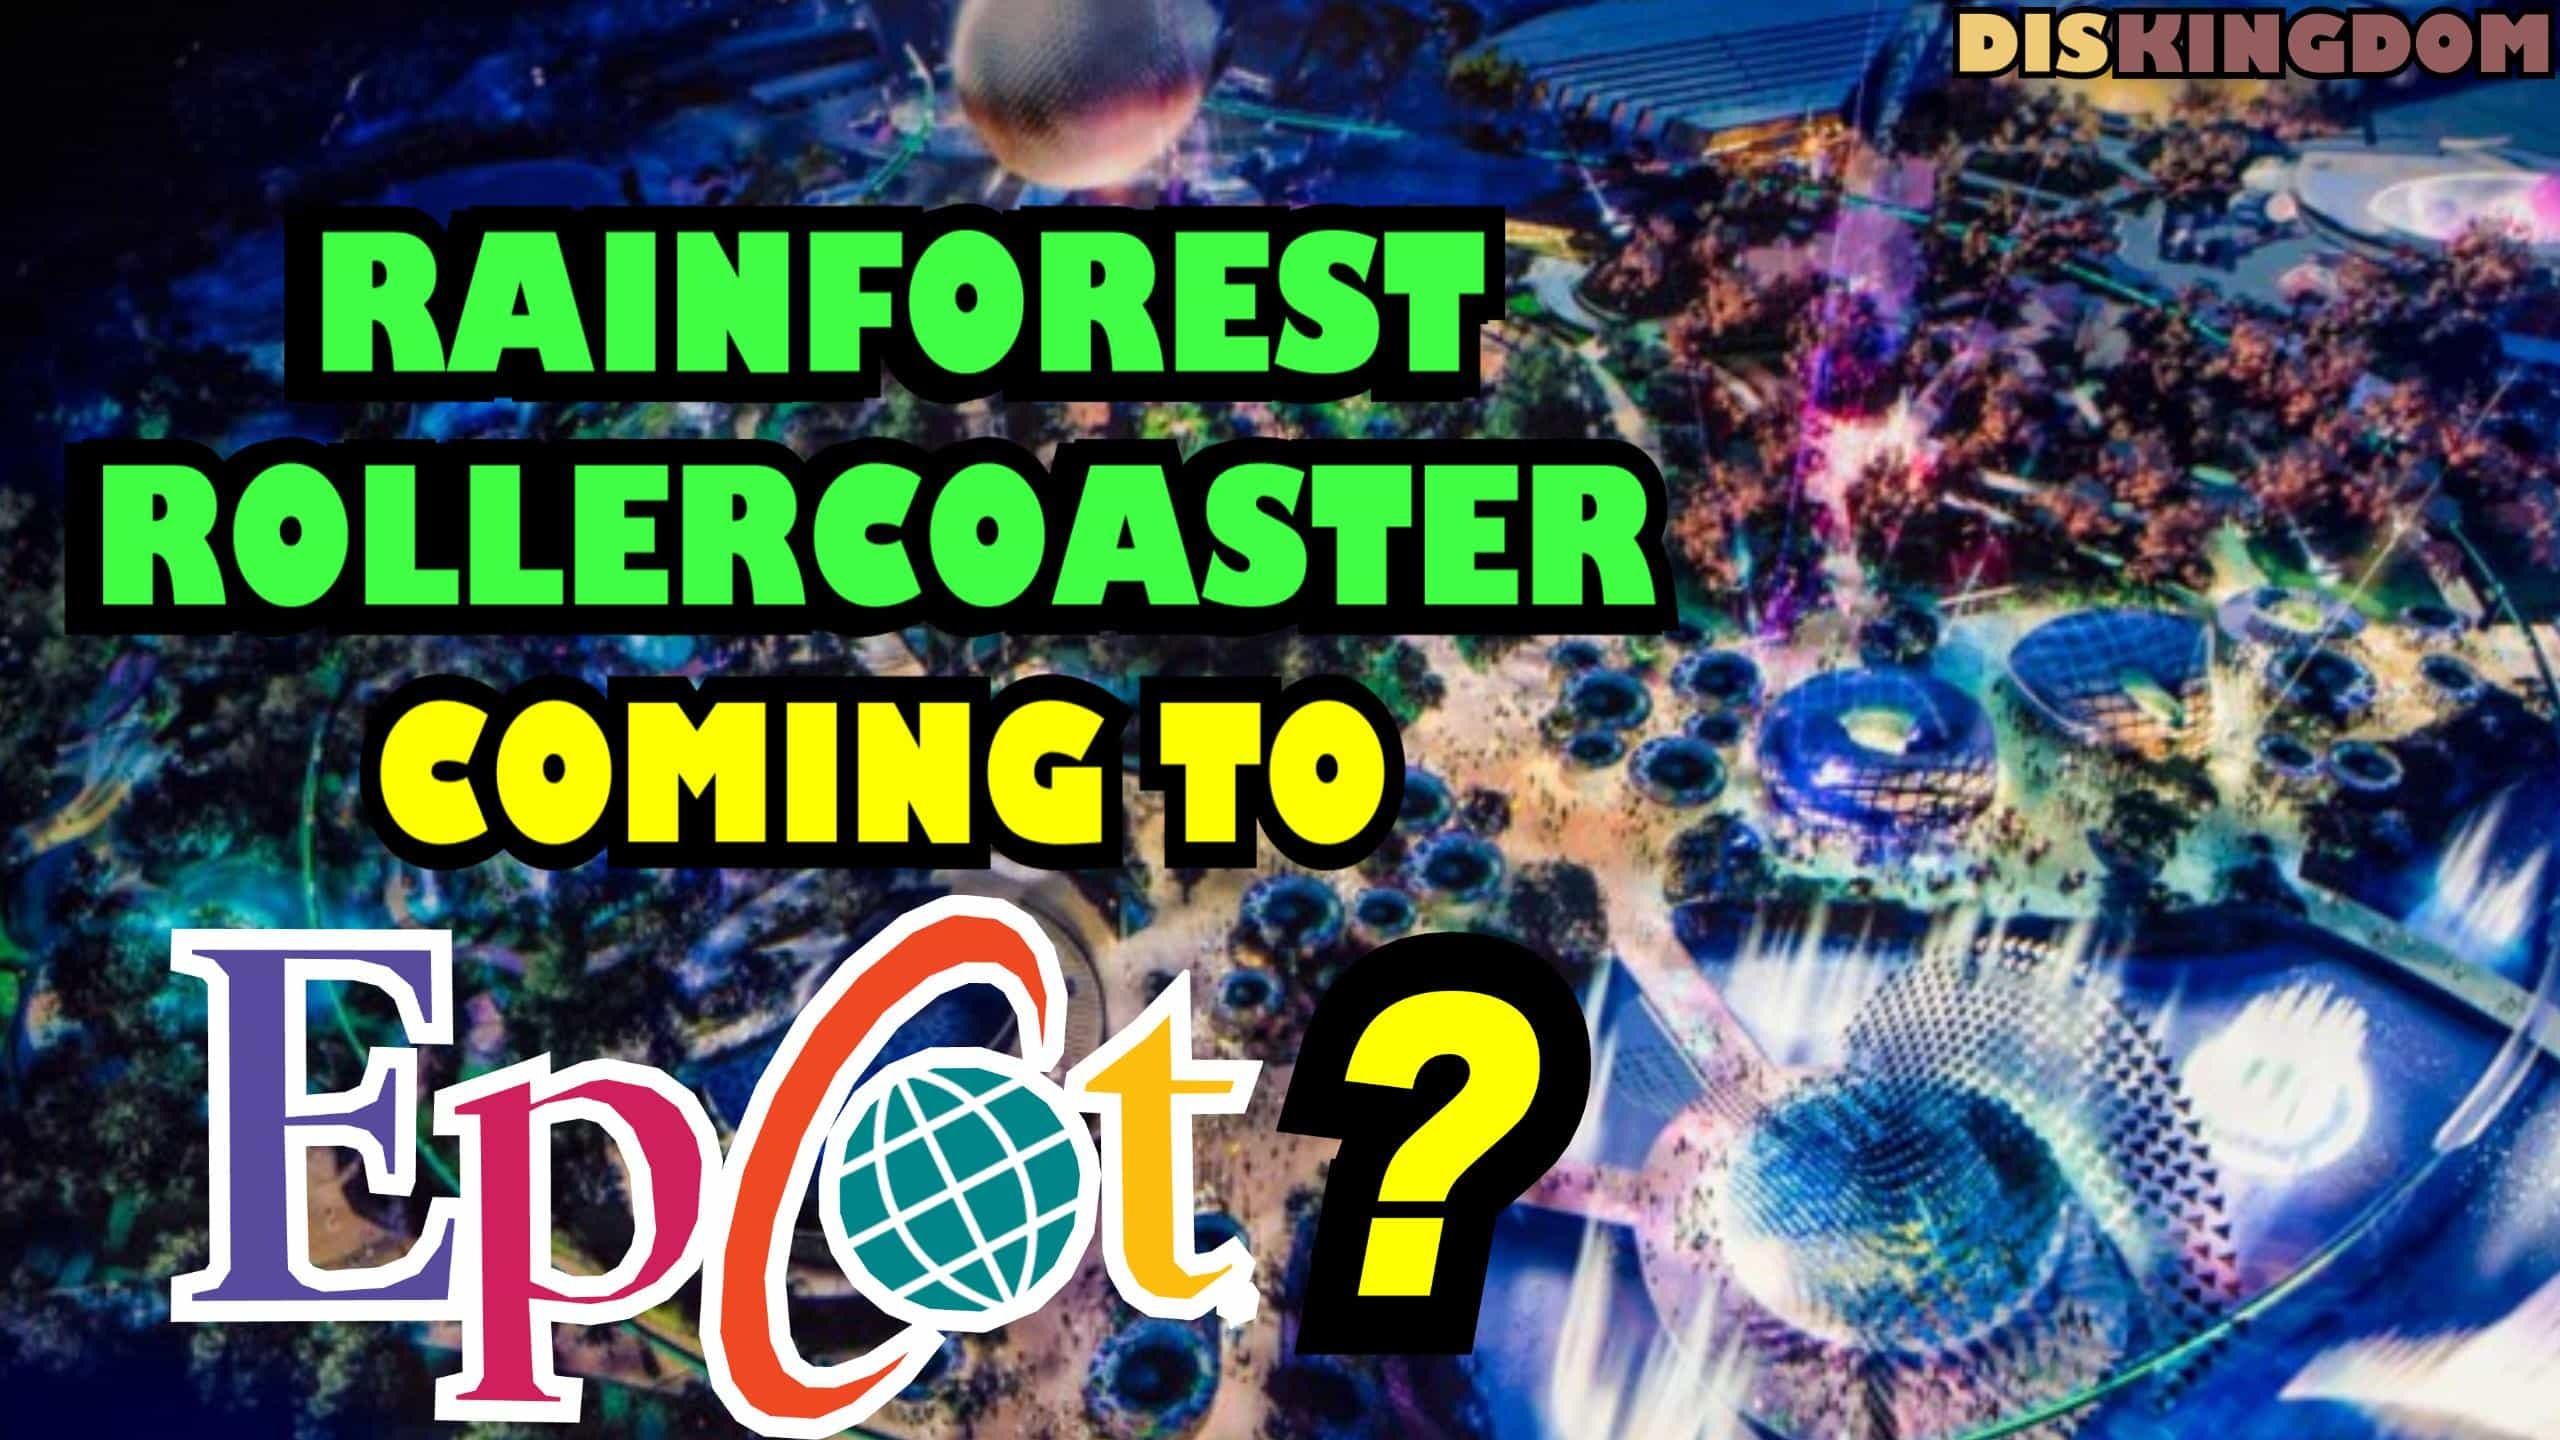 Is A Rainforest Rollercoaster Coming To Epcot?